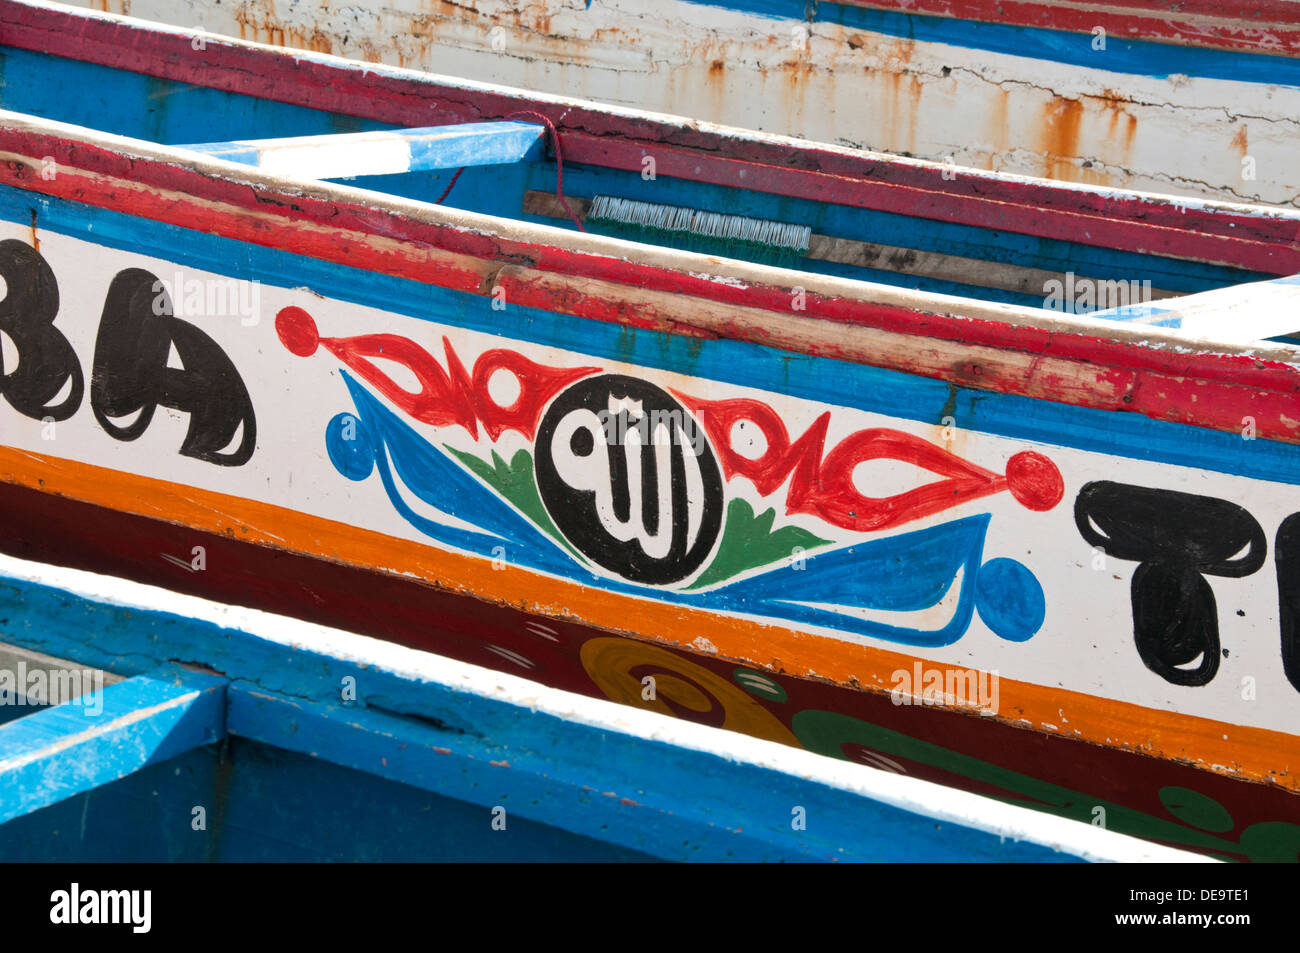 Brightly Painted Designs on Local Gambian Fishing Boats, Tanji, The Gambia, West Africa - Stock Image